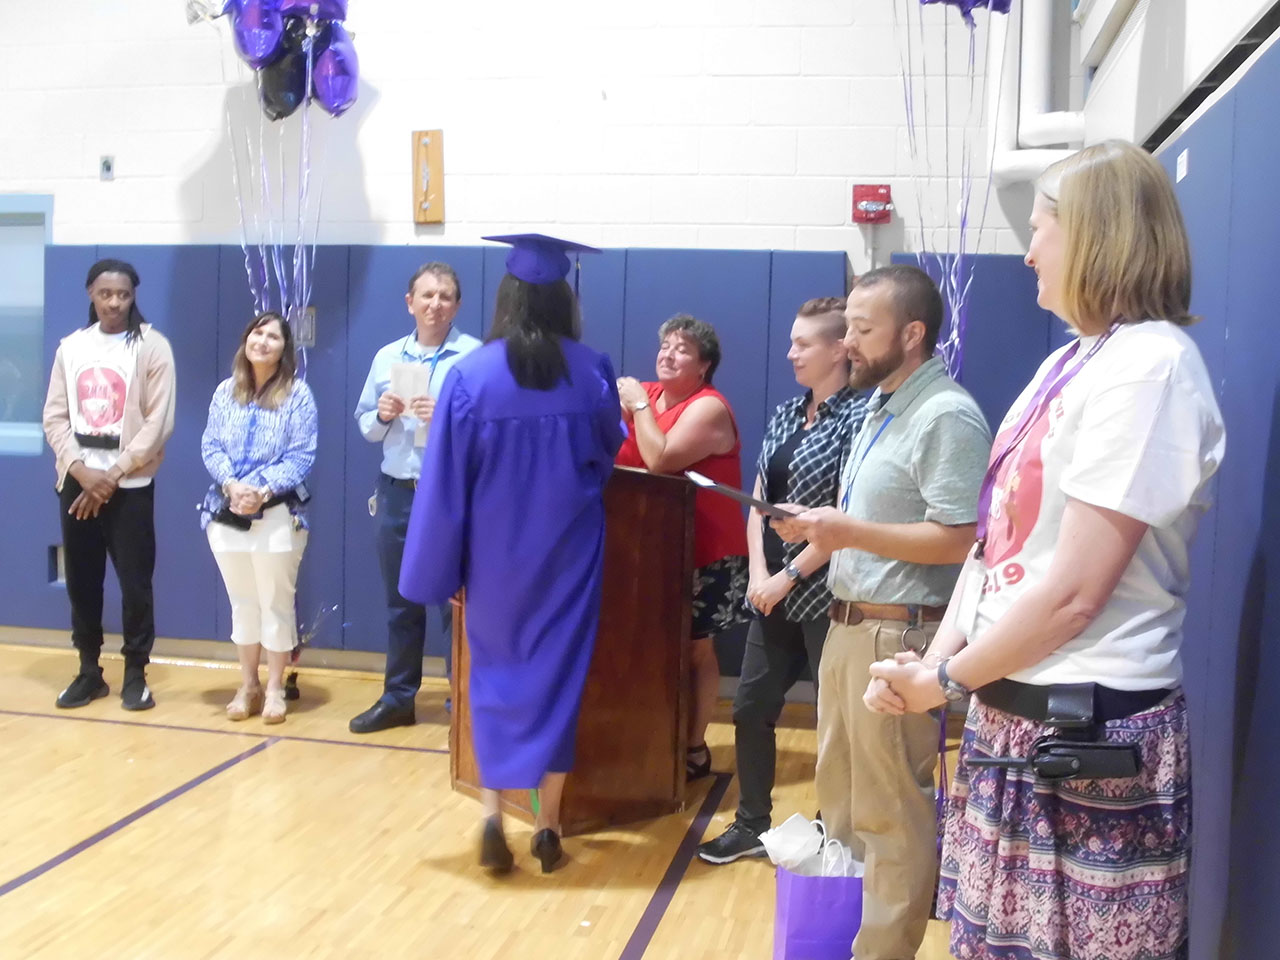 A graduate in a purple gown and mortar board accepts her diploma